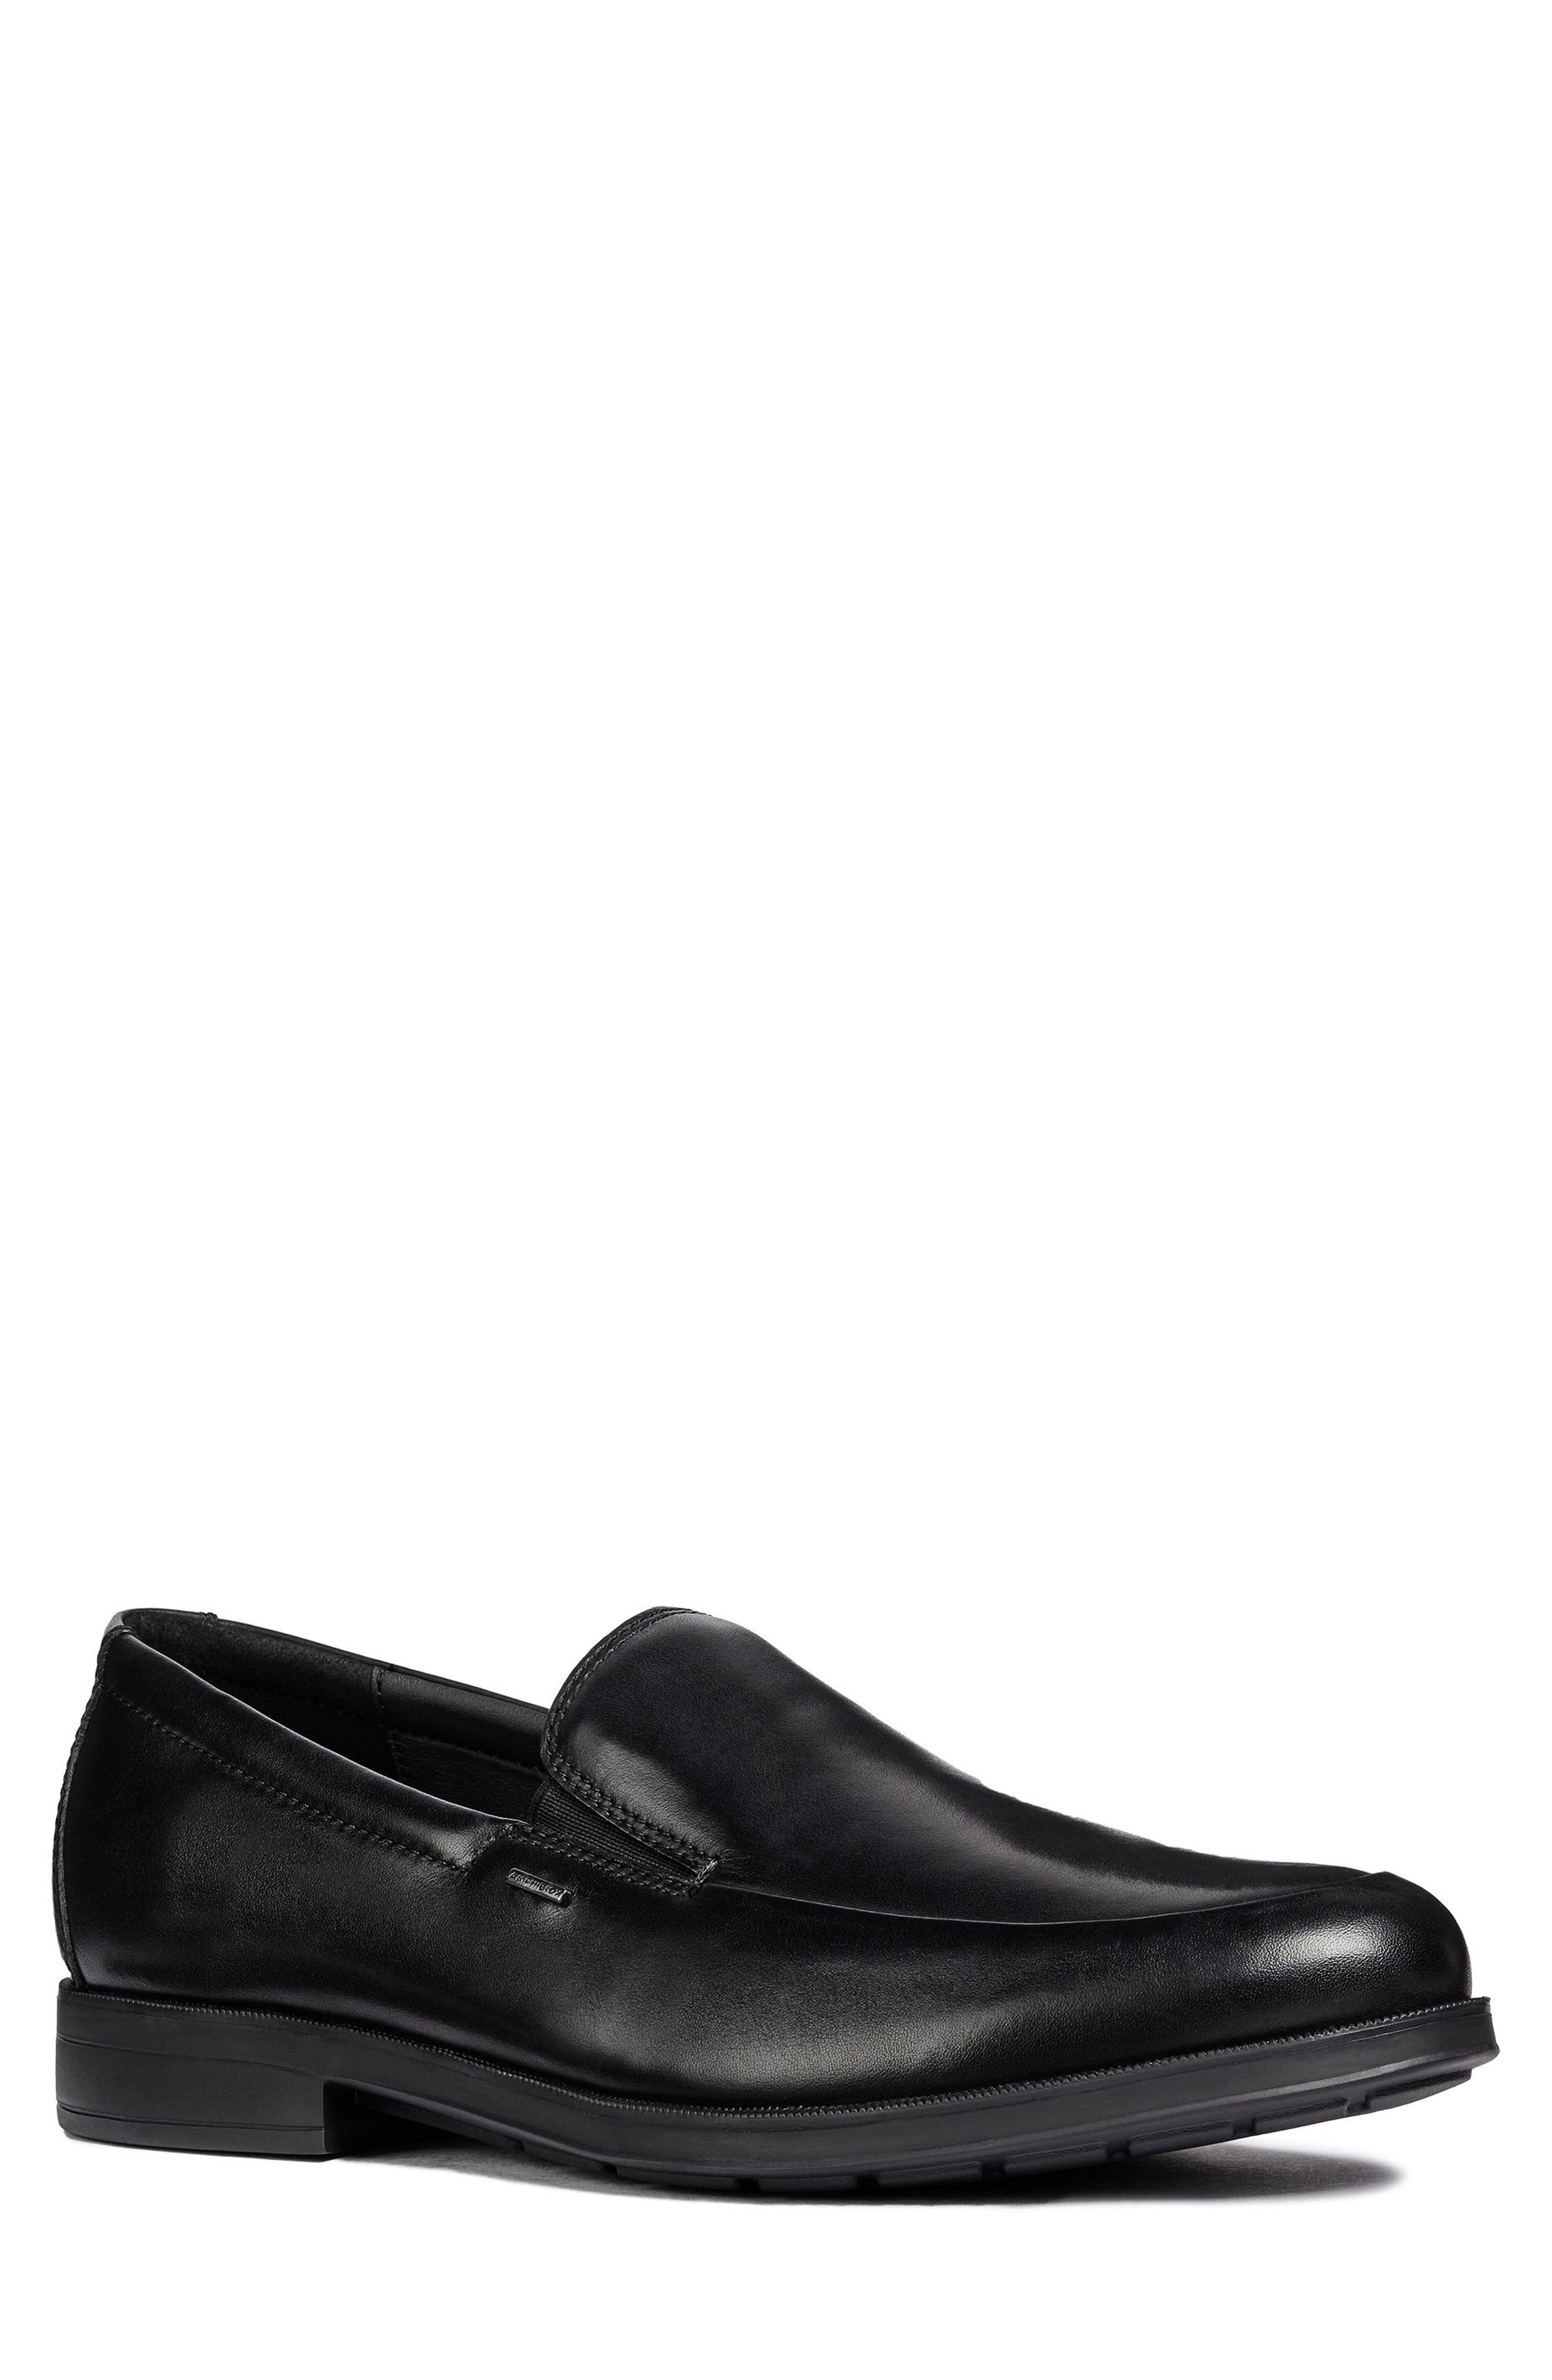 GEOX Hilstone ABX 2 Loafer, Main, color, 001